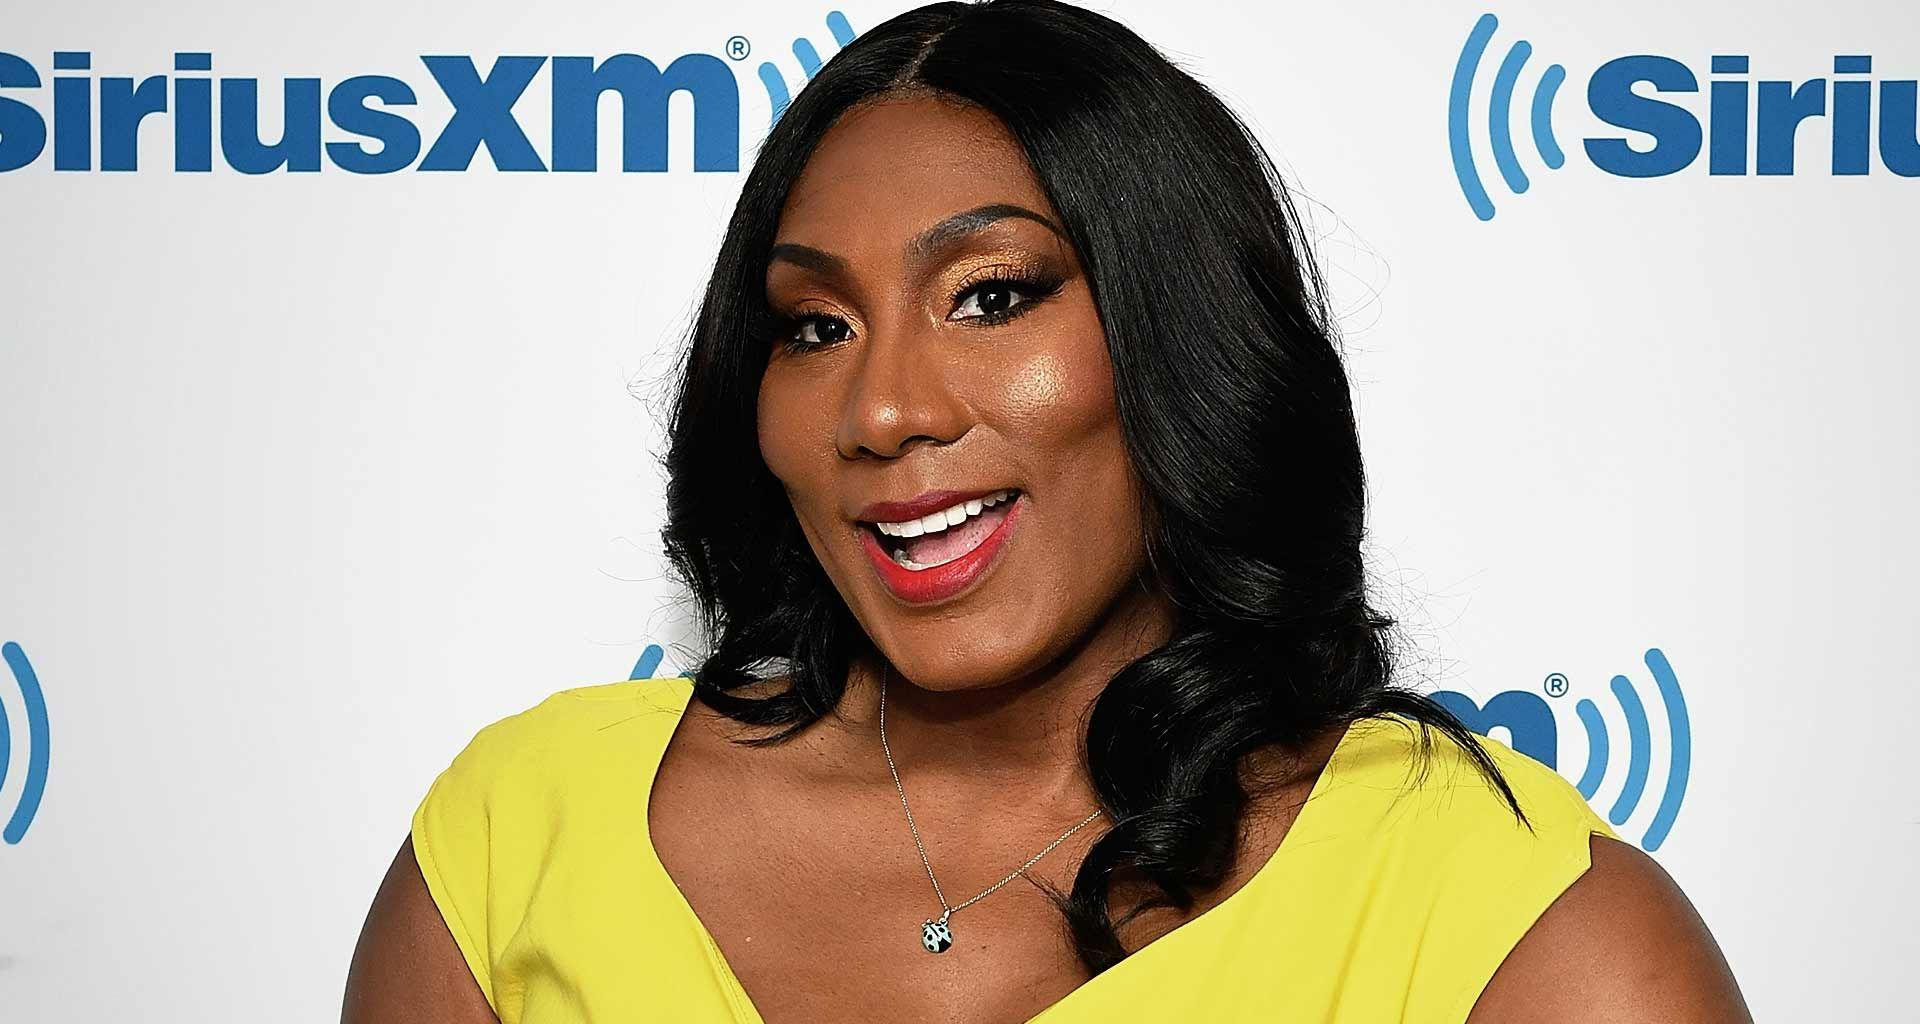 Towanda Braxton Is Living Her Best Life And She's Not Shy To Flaunt It - See Her Video